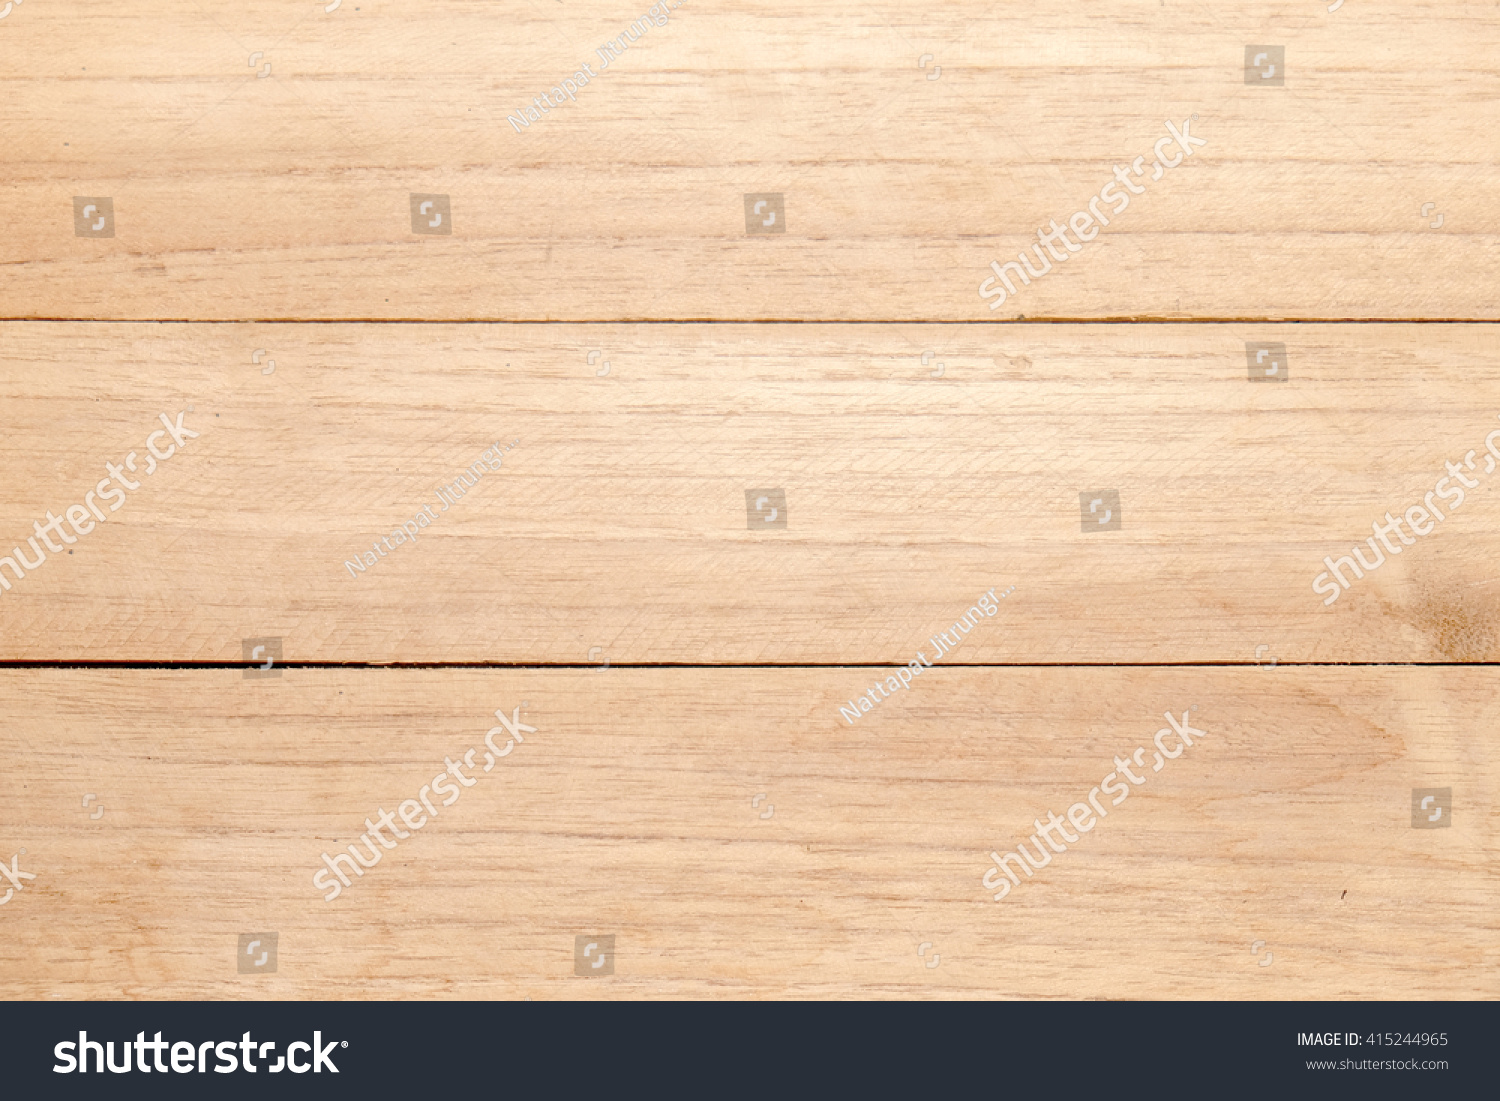 light wood floor background. Light wood texture with natural patterns background horizon Wood Texture Natural Patterns Background Stock Photo